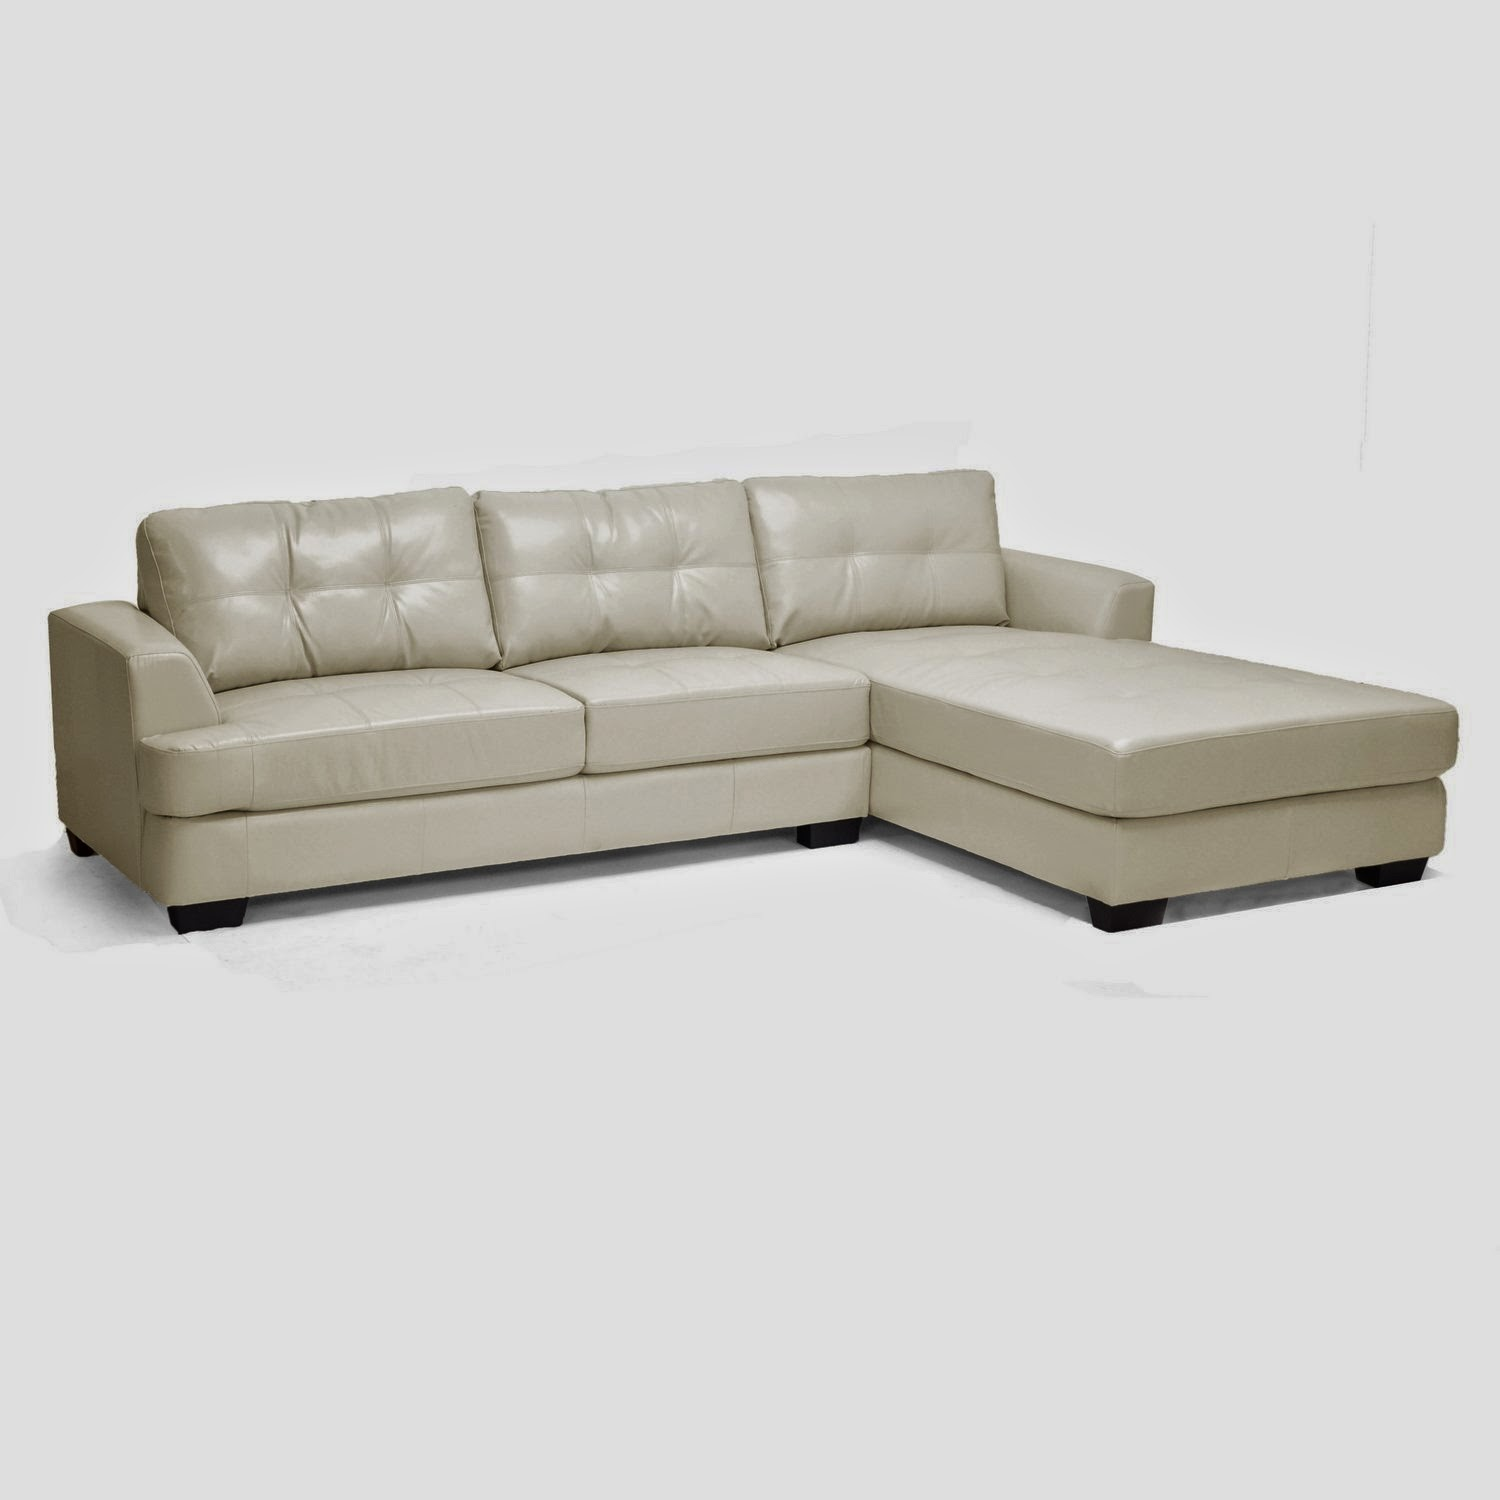 Couch with chaise leather couch with chaise lounge for Black leather chaise lounge sofa